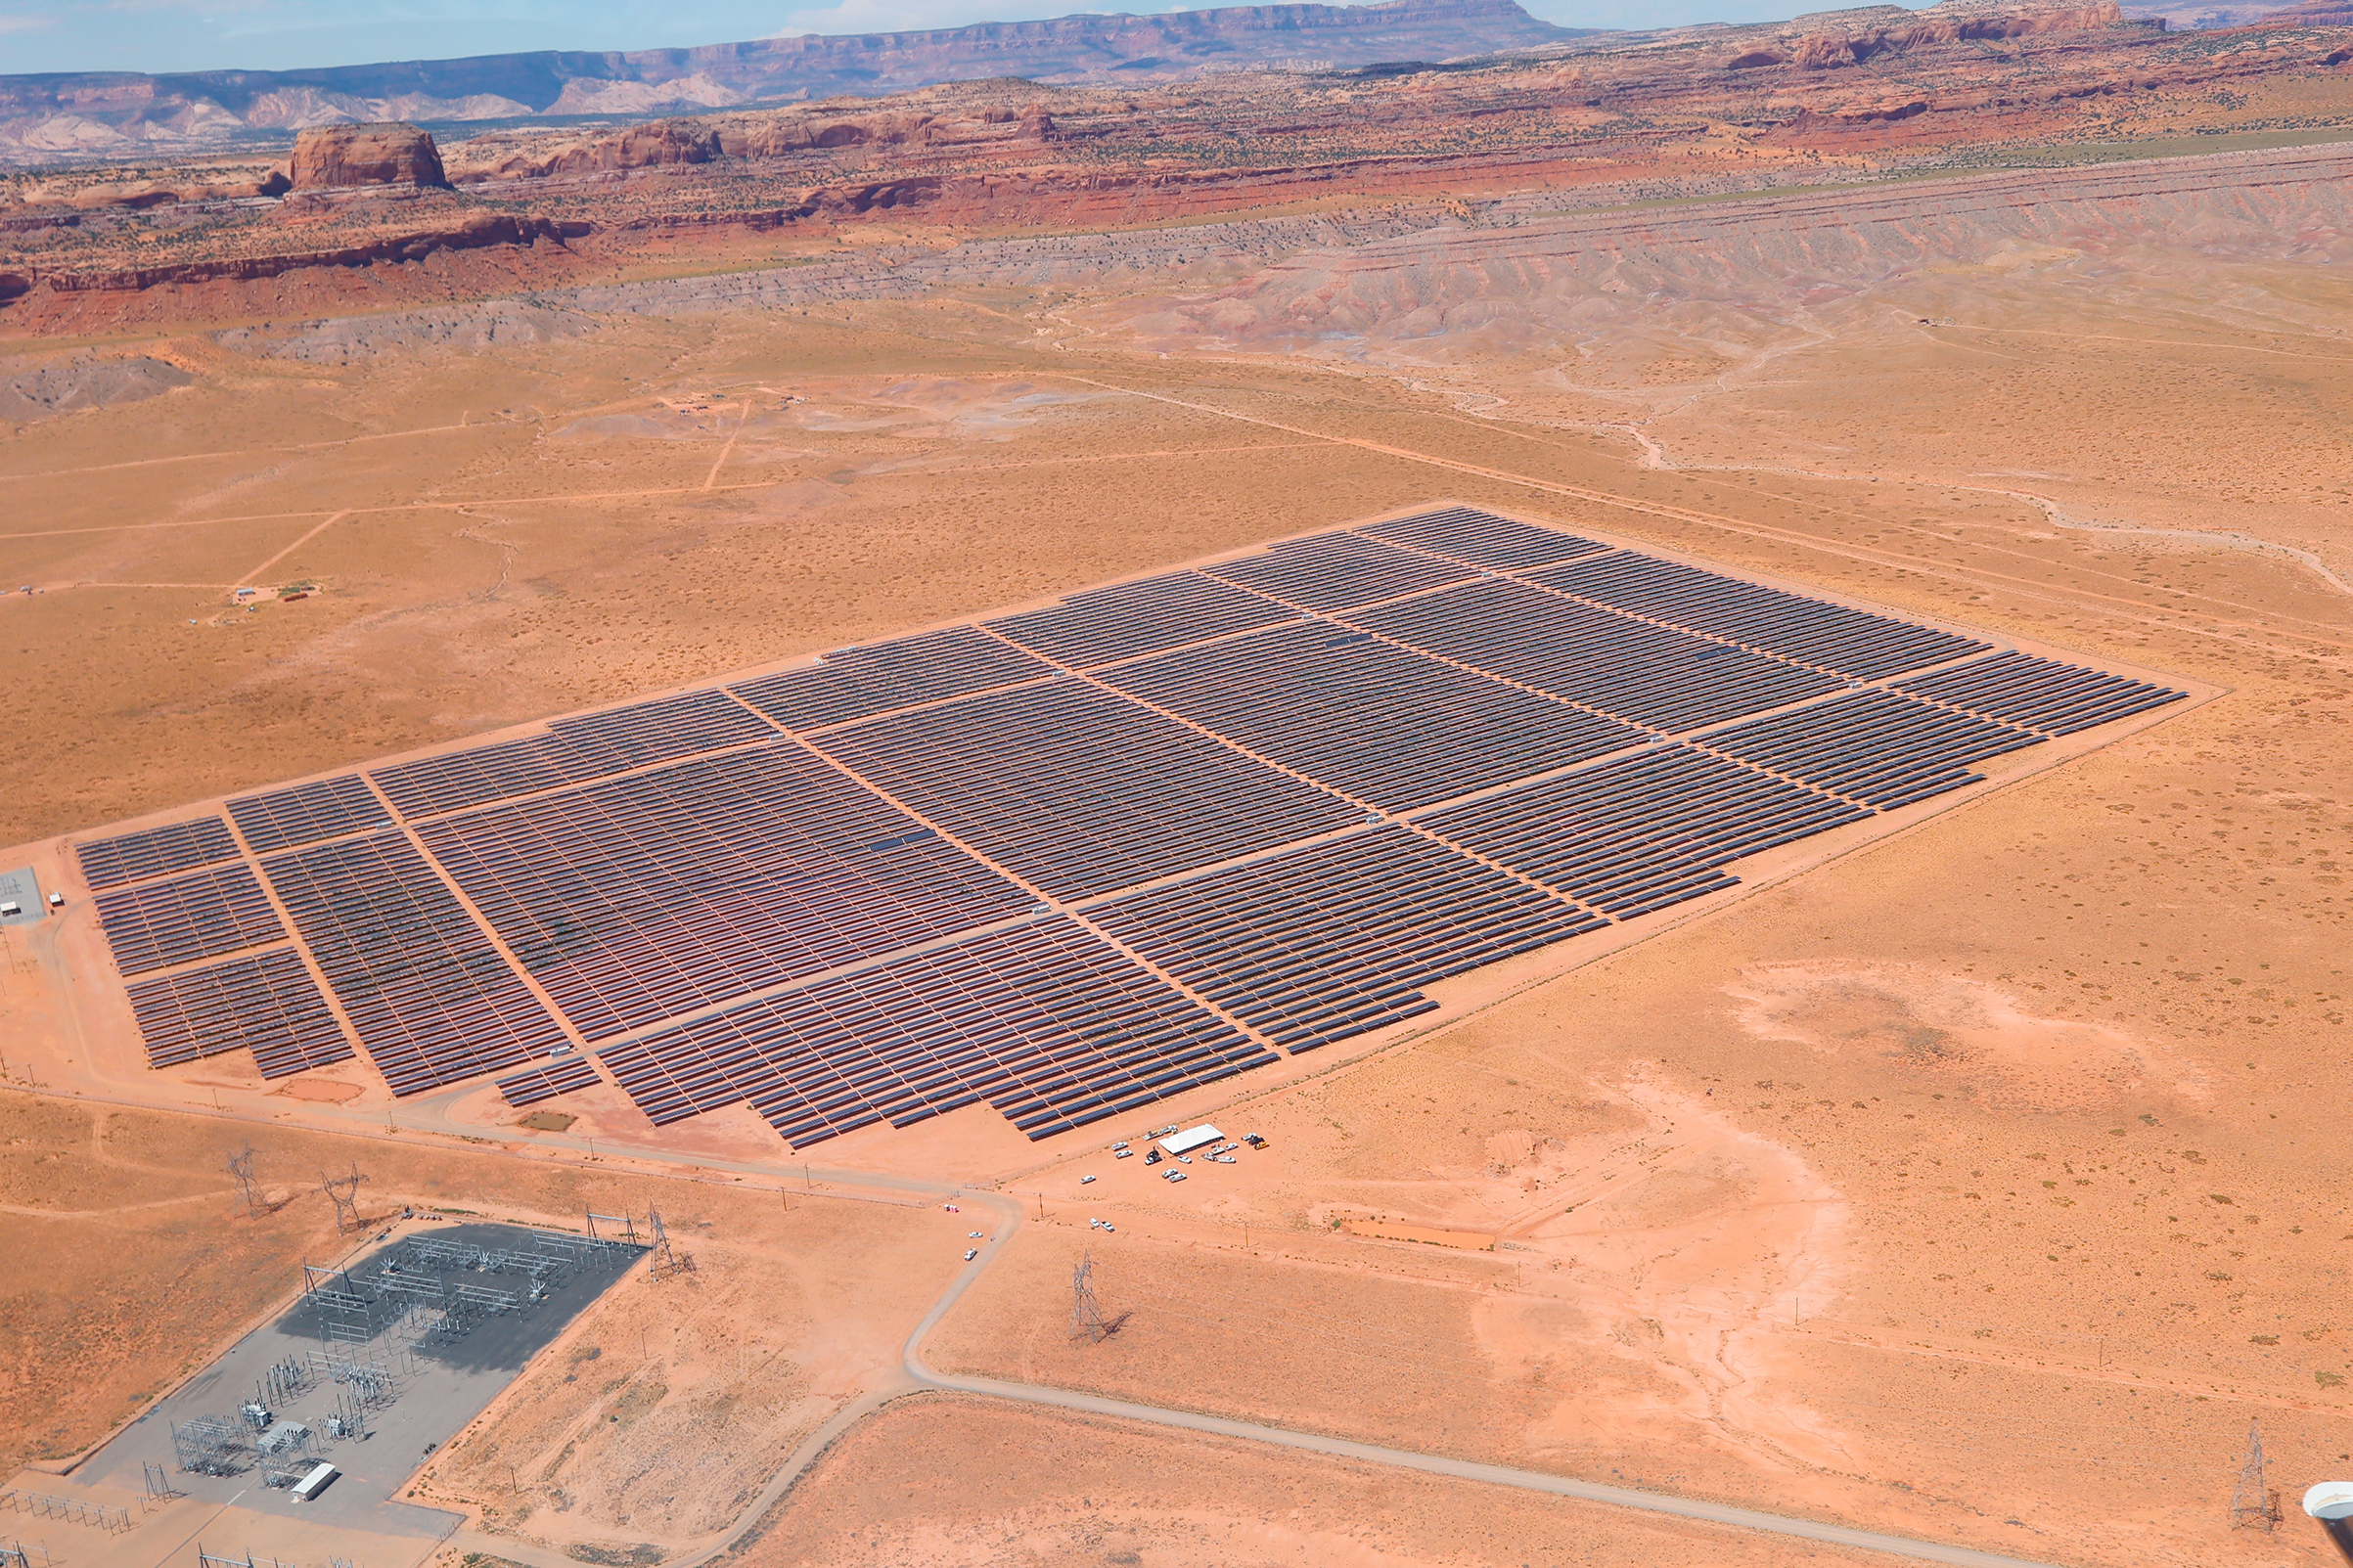 A solar facility on Navajo Nation land along the Arizona-Utah border.